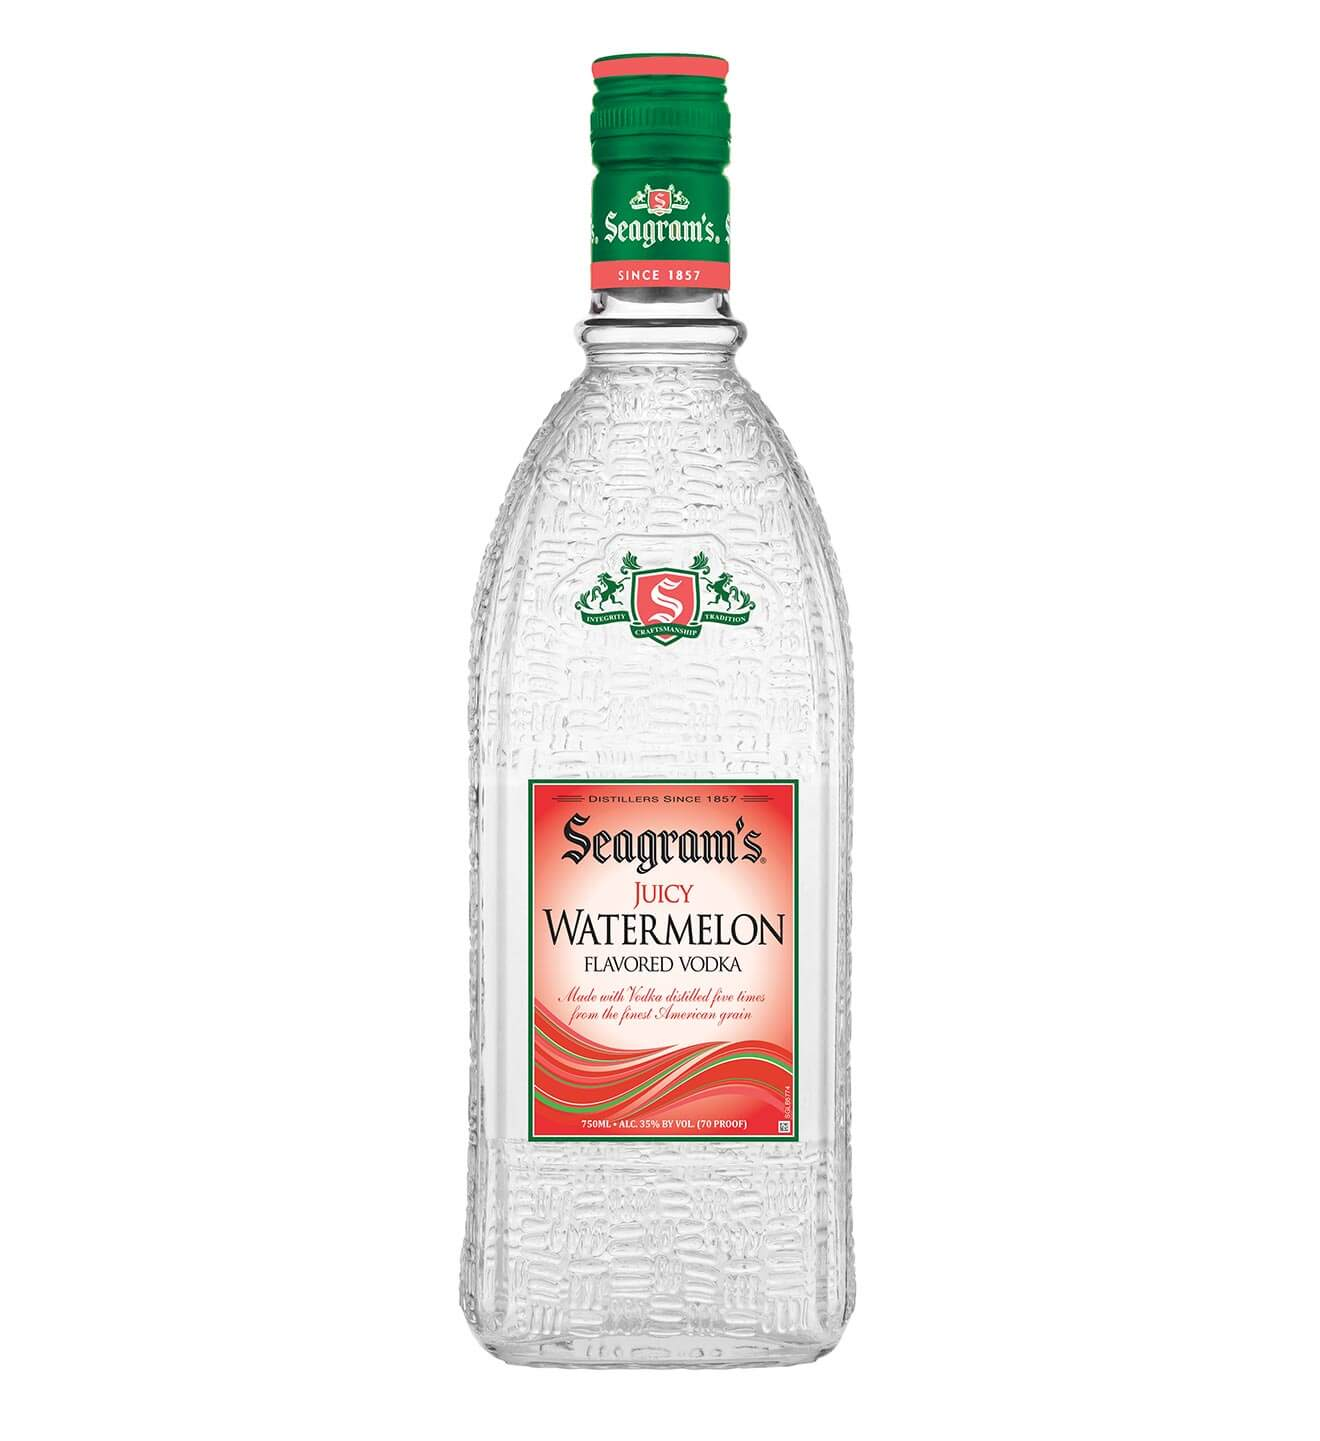 Seagram's Vodka Juicy Watermelon Flavor